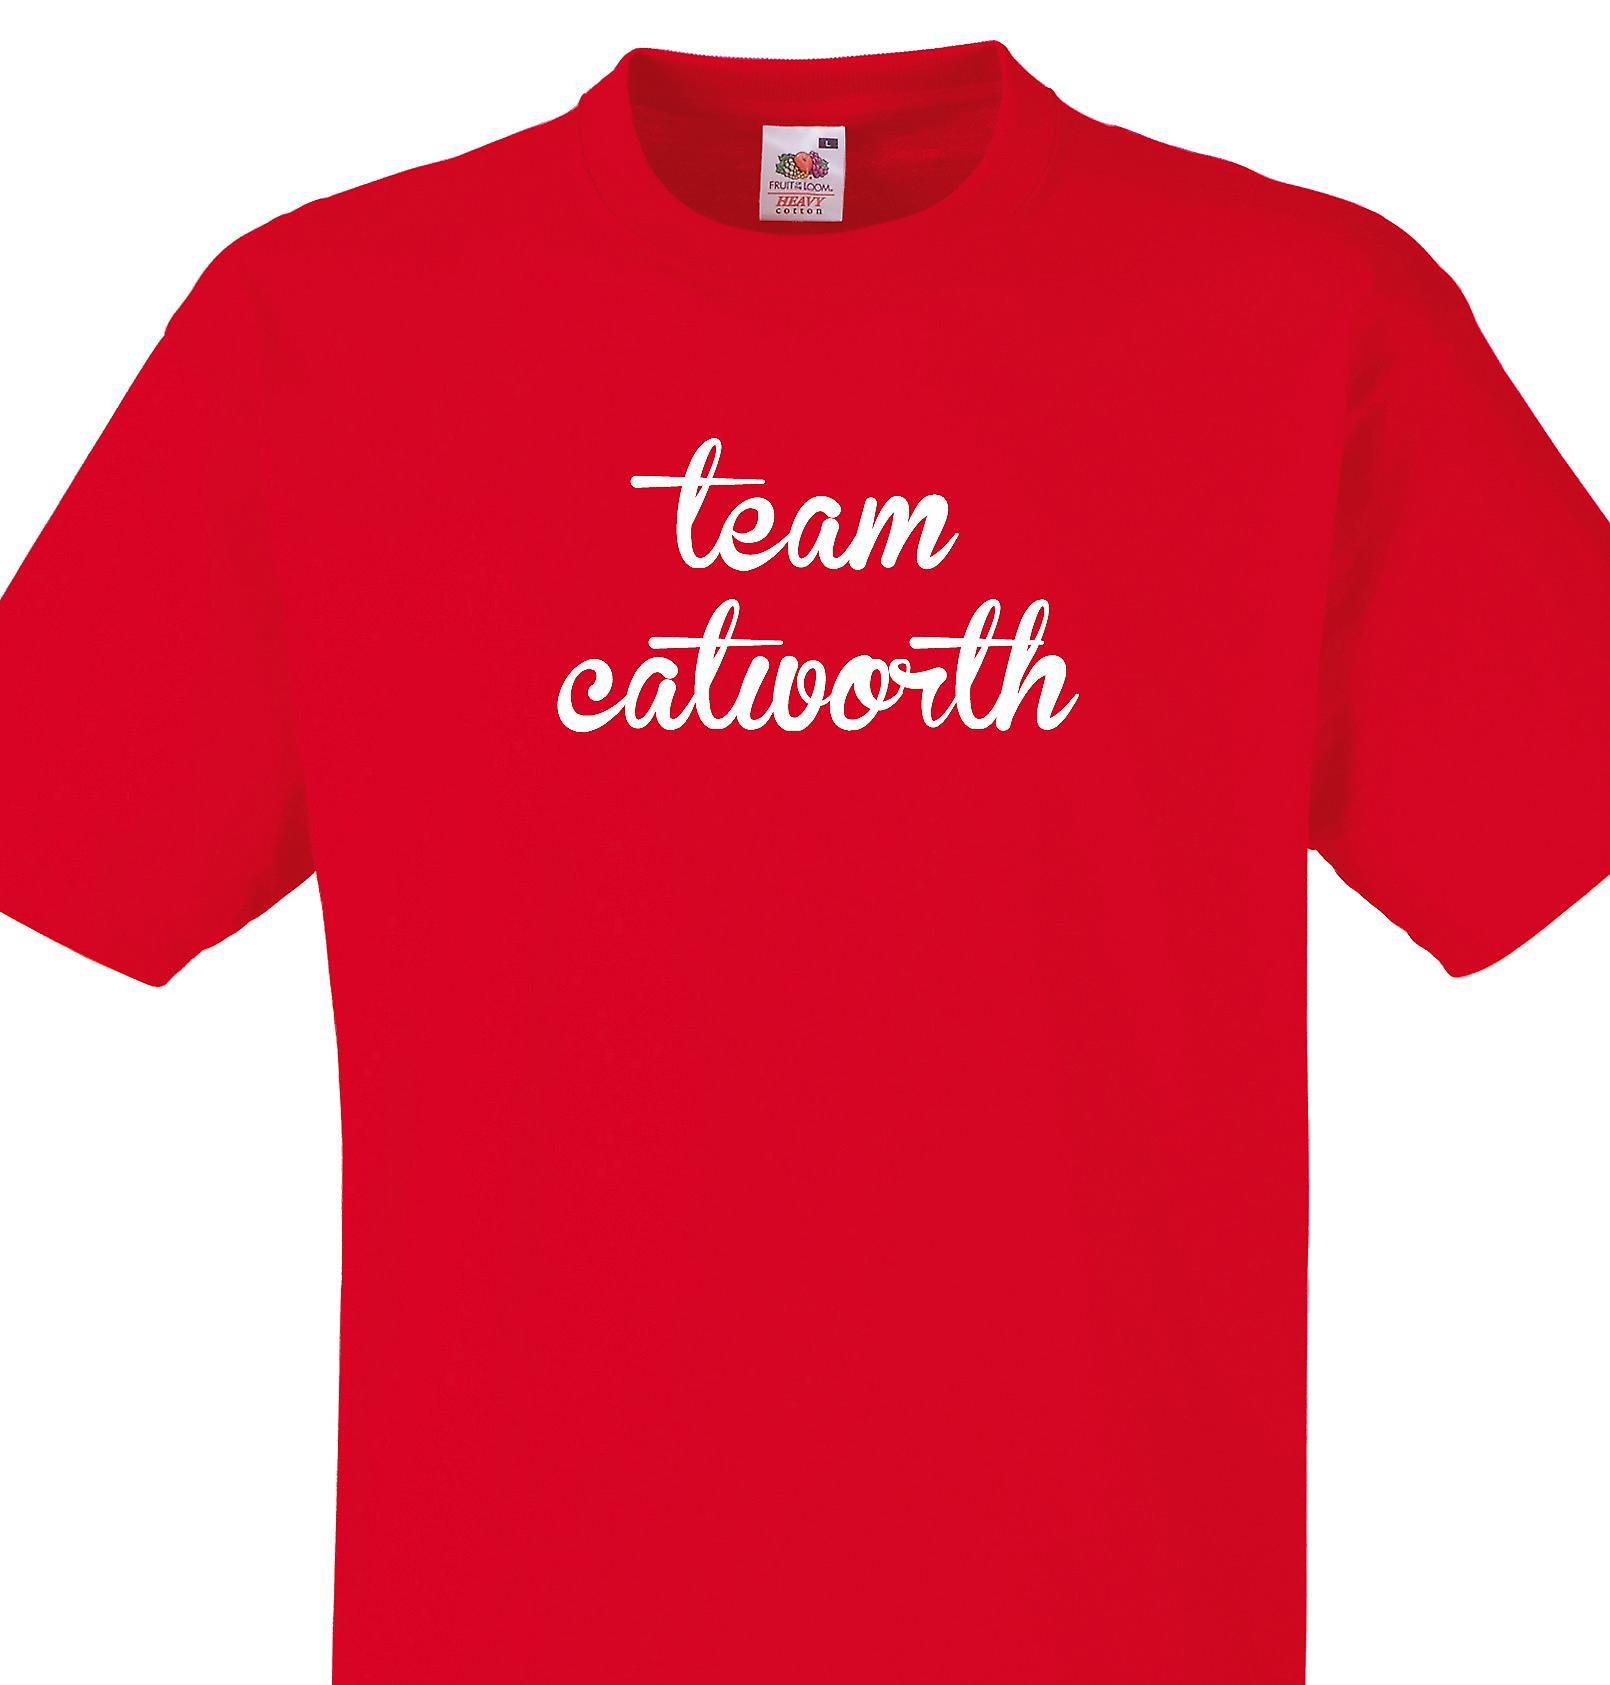 Team Catworth Red T shirt